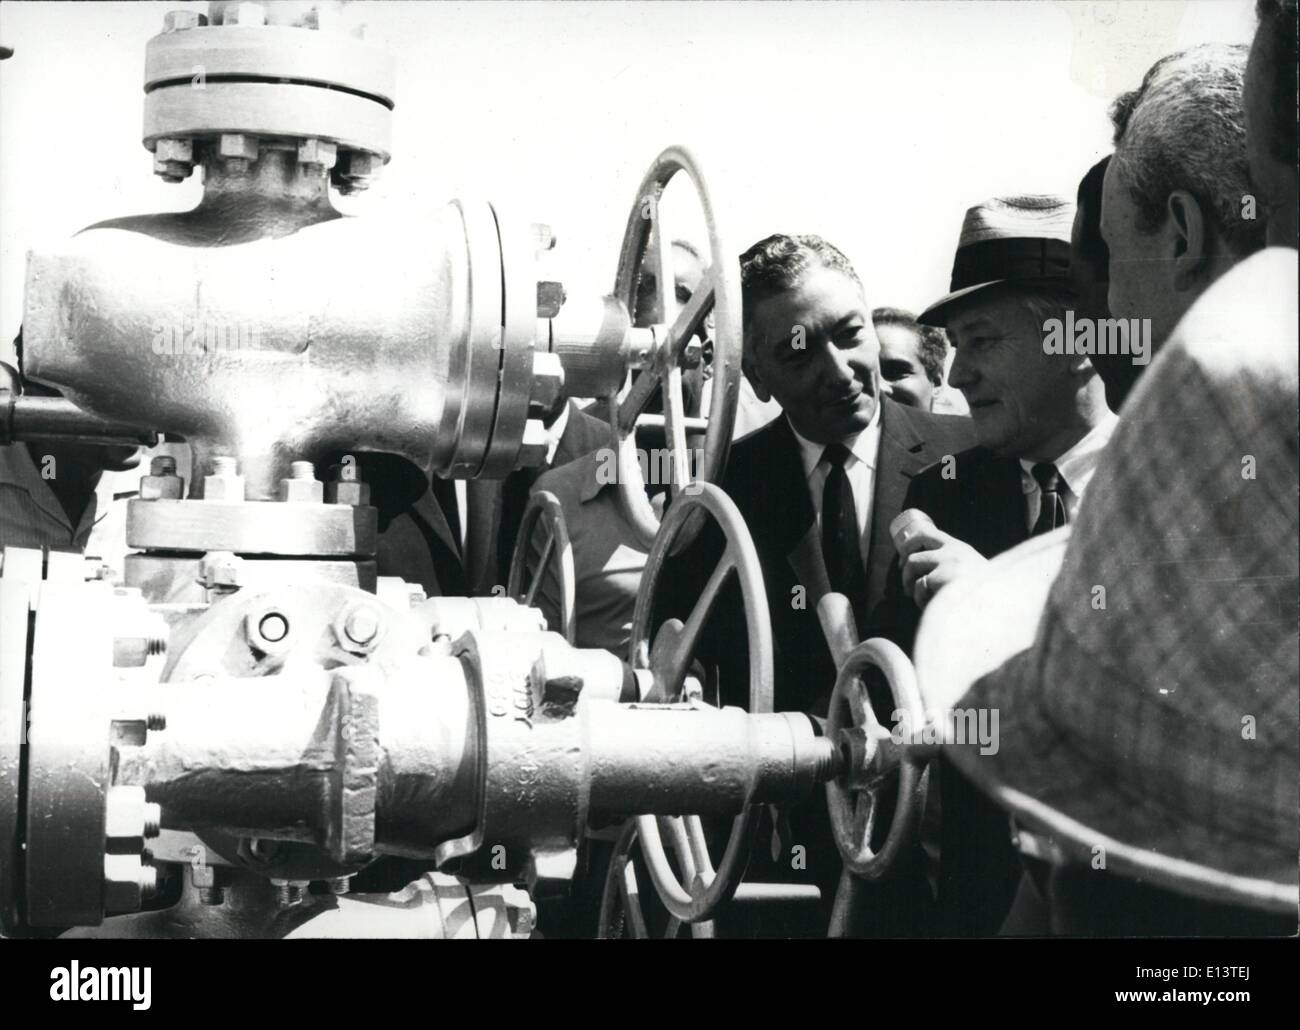 Mar. 27, 2012 - The Alamein Oilfield was inaugurated by Dr. Aziz Sedky, Minister of Industry and Petroleum, representing - Stock Image